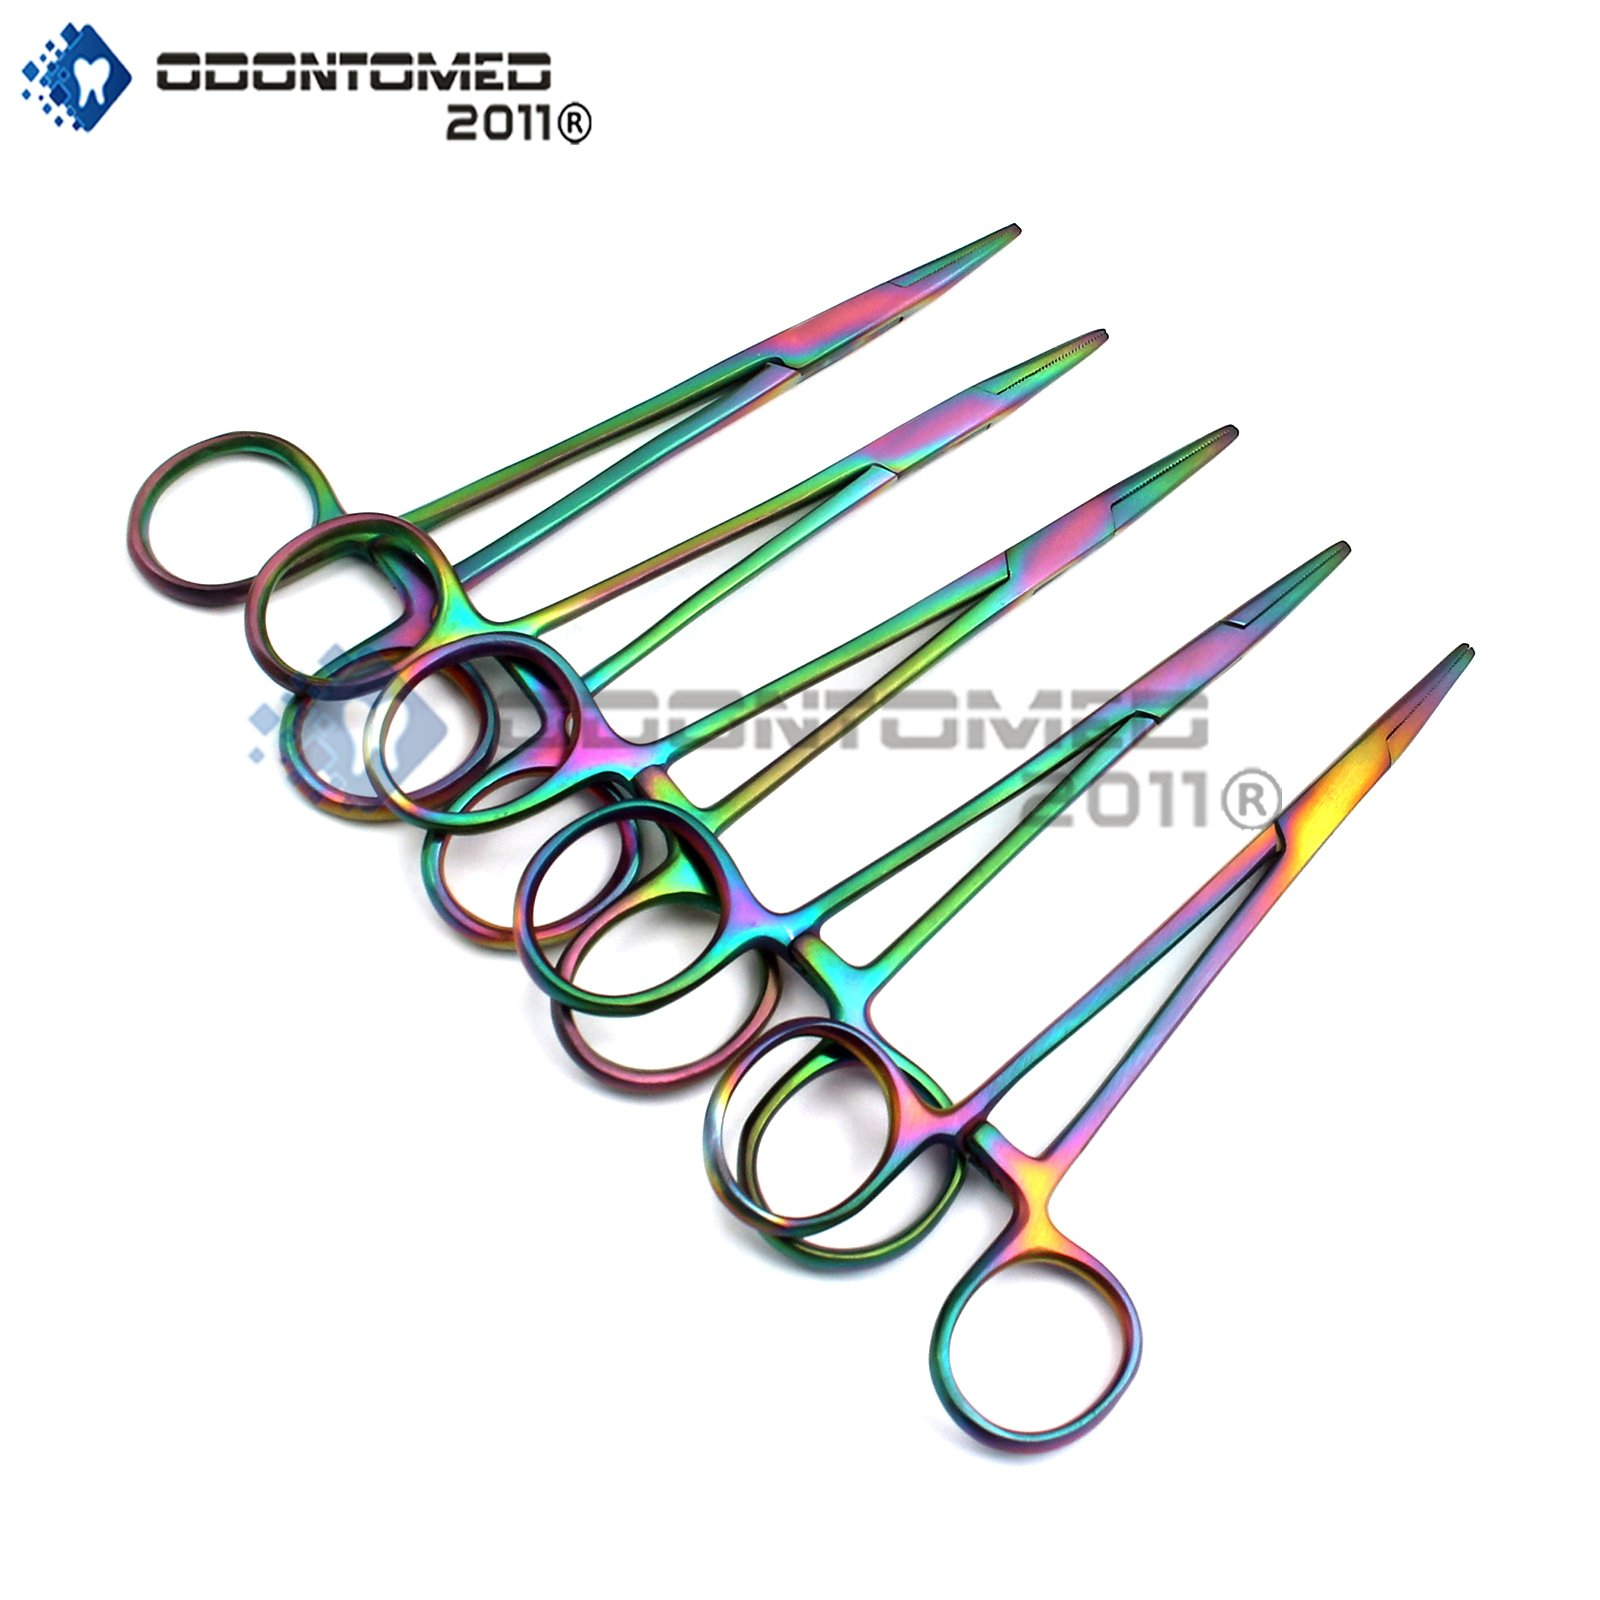 OdontoMed2011® Set of 5 Multi Color Rainbow Mosquito Hemostat Forceps 5'' Straight Stainless Steel Multi Color Rainbow Color Hemostat Locking Clamp ODM by ODONTOMED